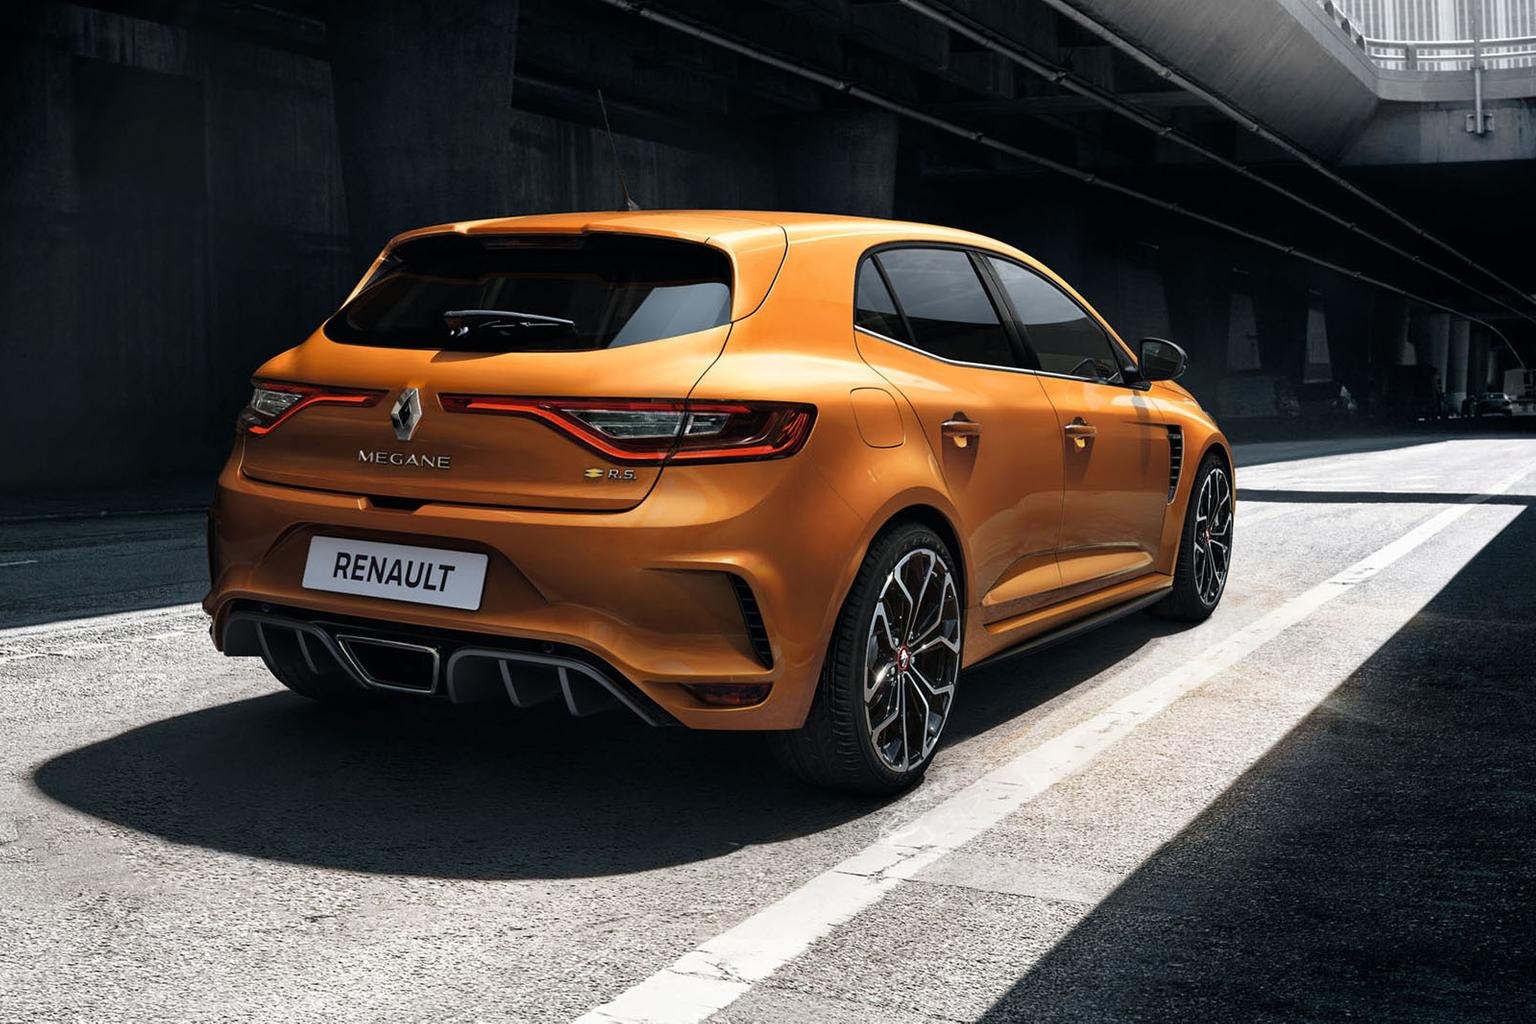 New Renault Megane RS revealed – prices, specs and release date